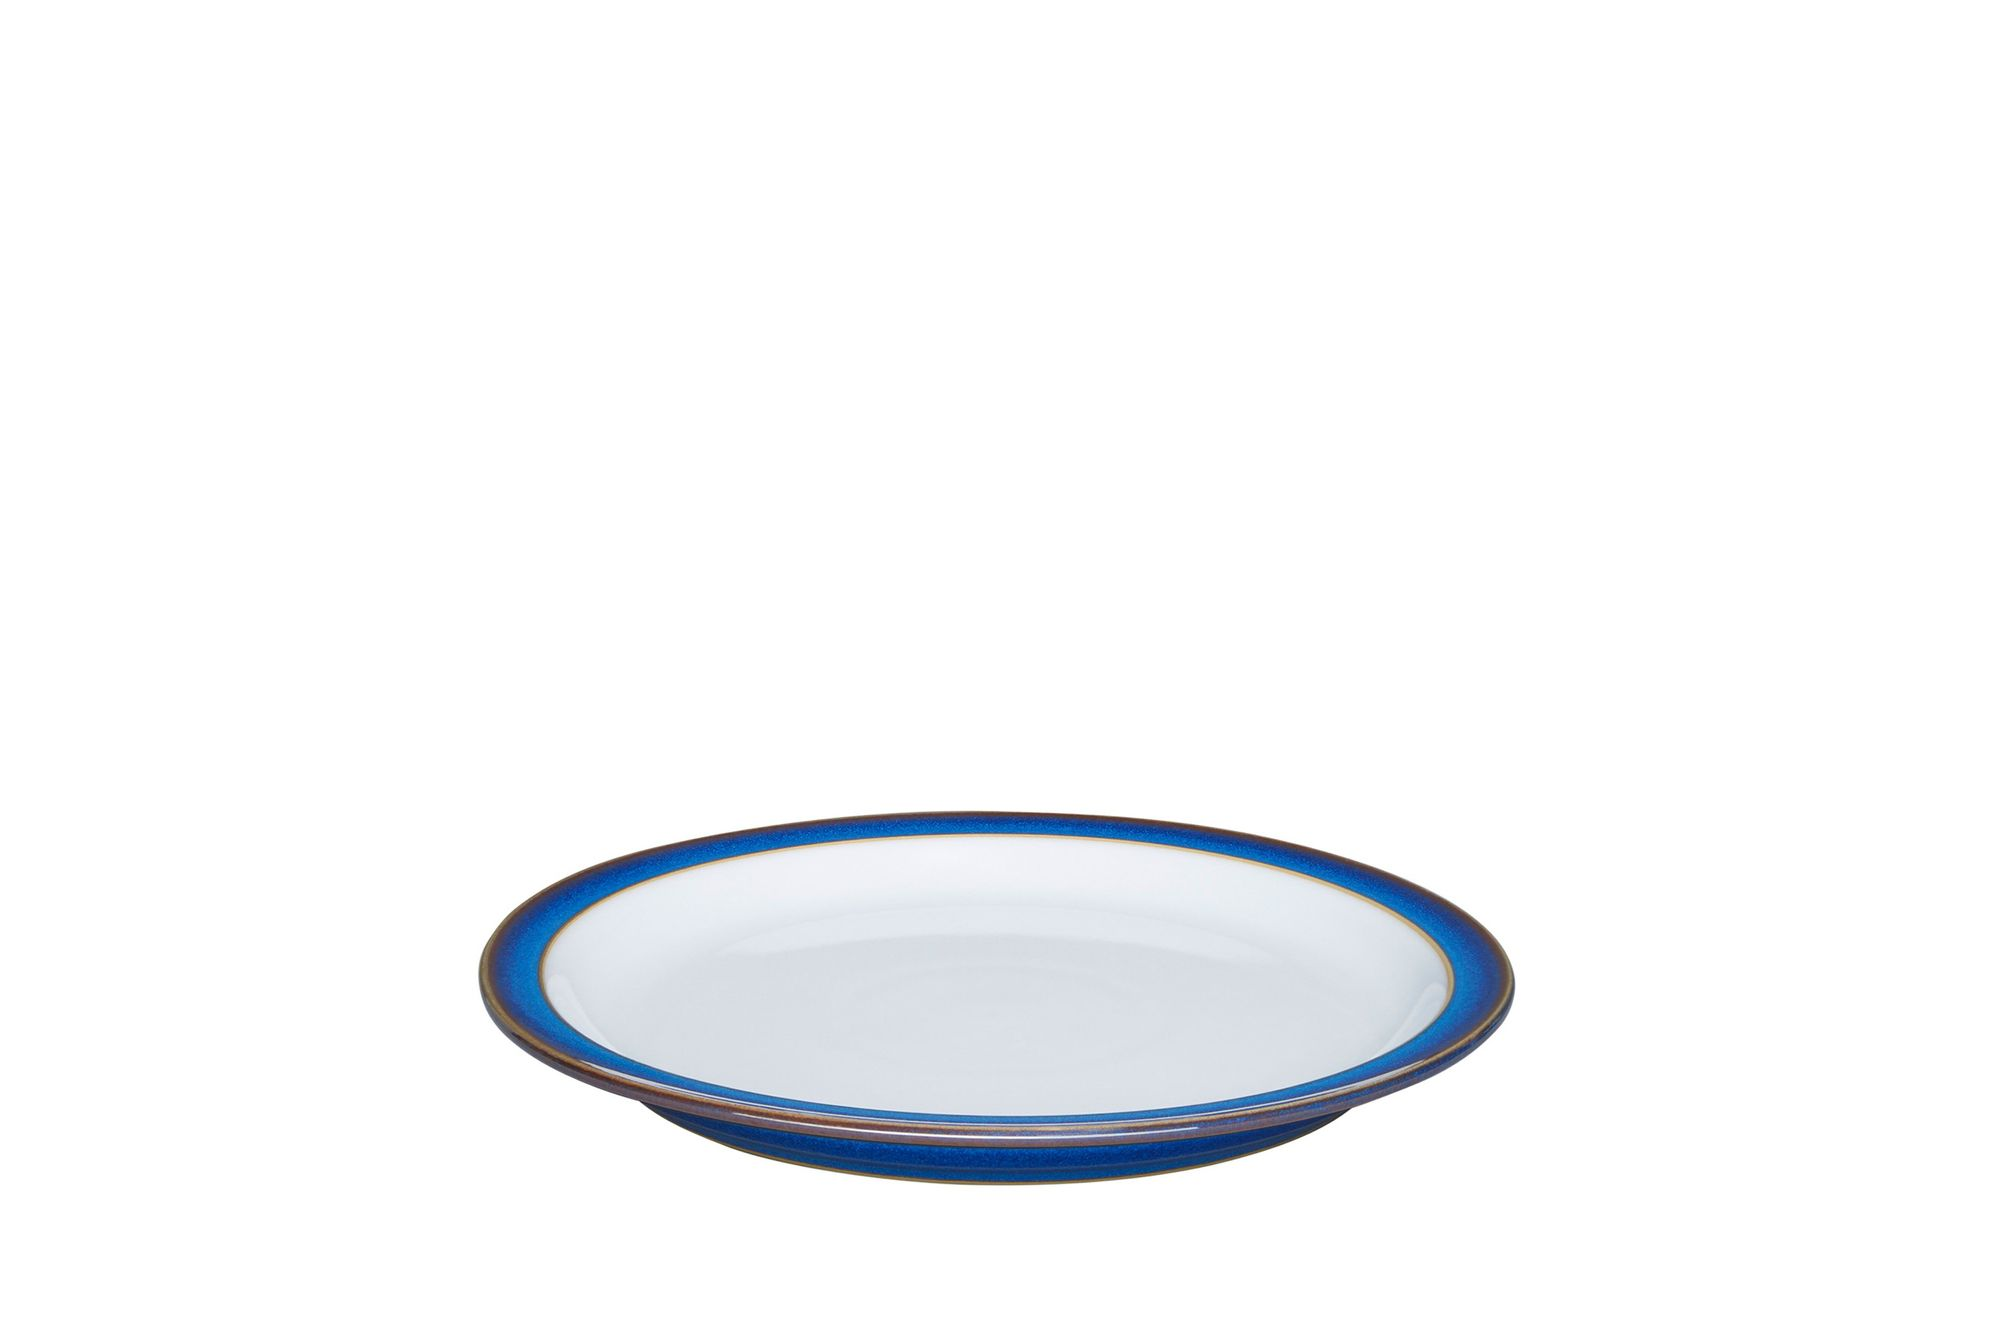 Denby Imperial Blue Side Plate 22cm thumb 2